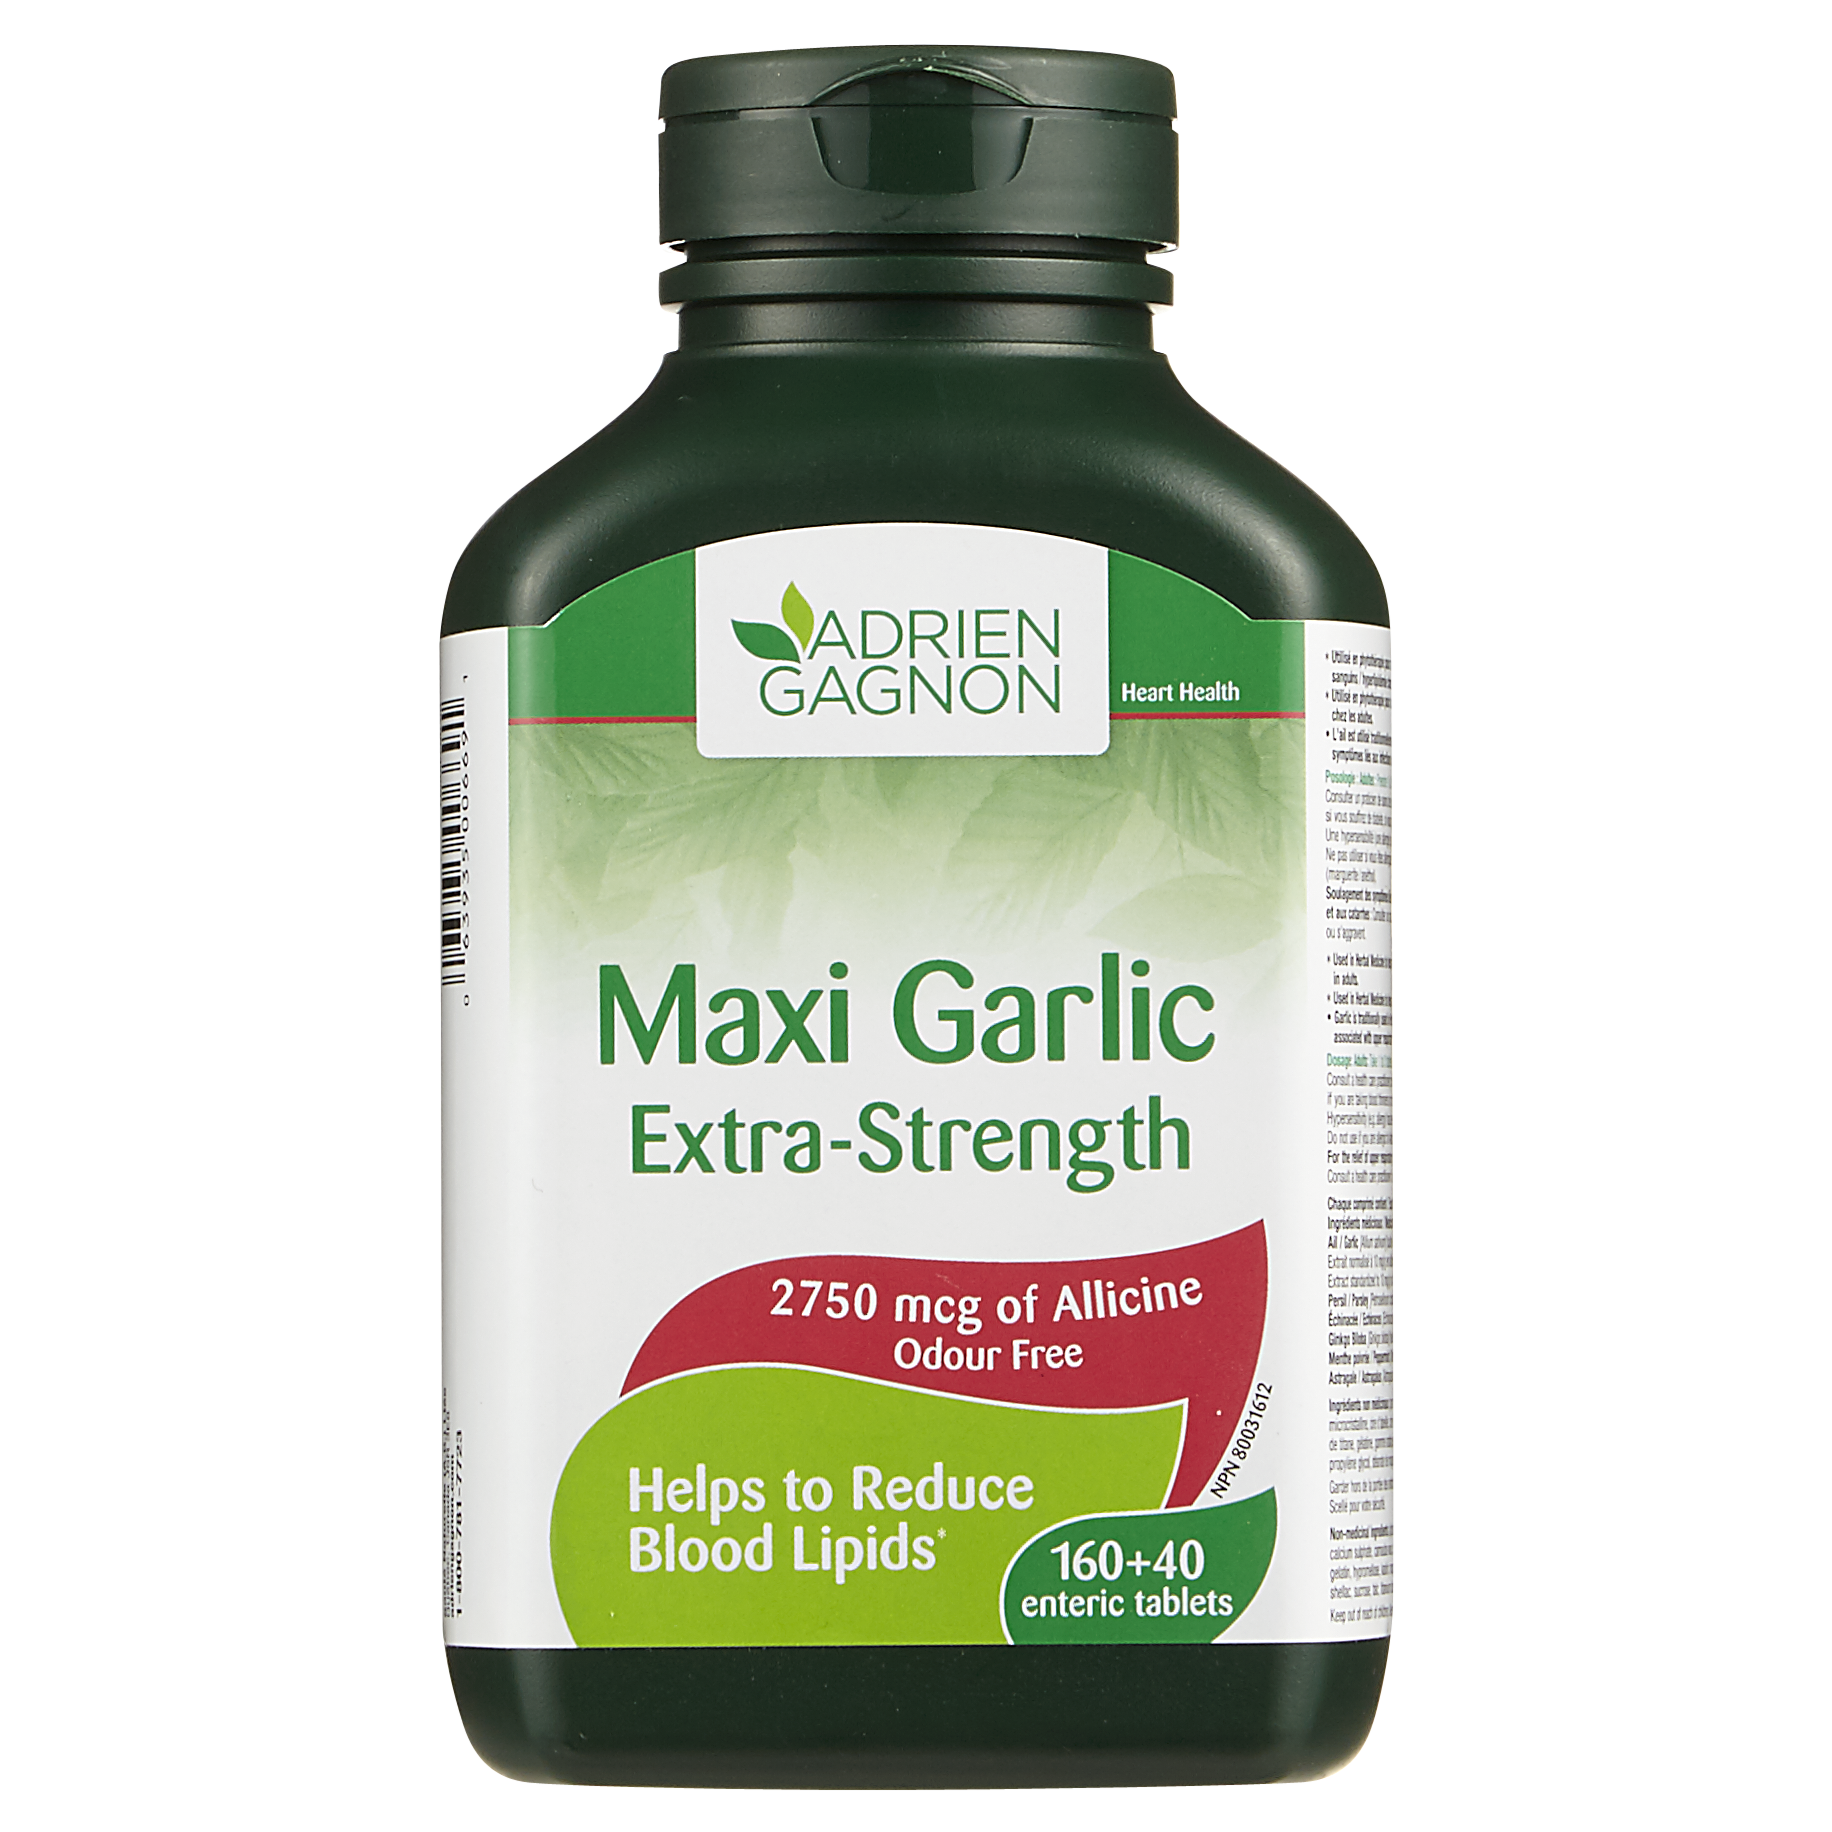 AG Natural Health Maxi Garlic Extra Strength Allicine 2750 mcg x 200 Tablets